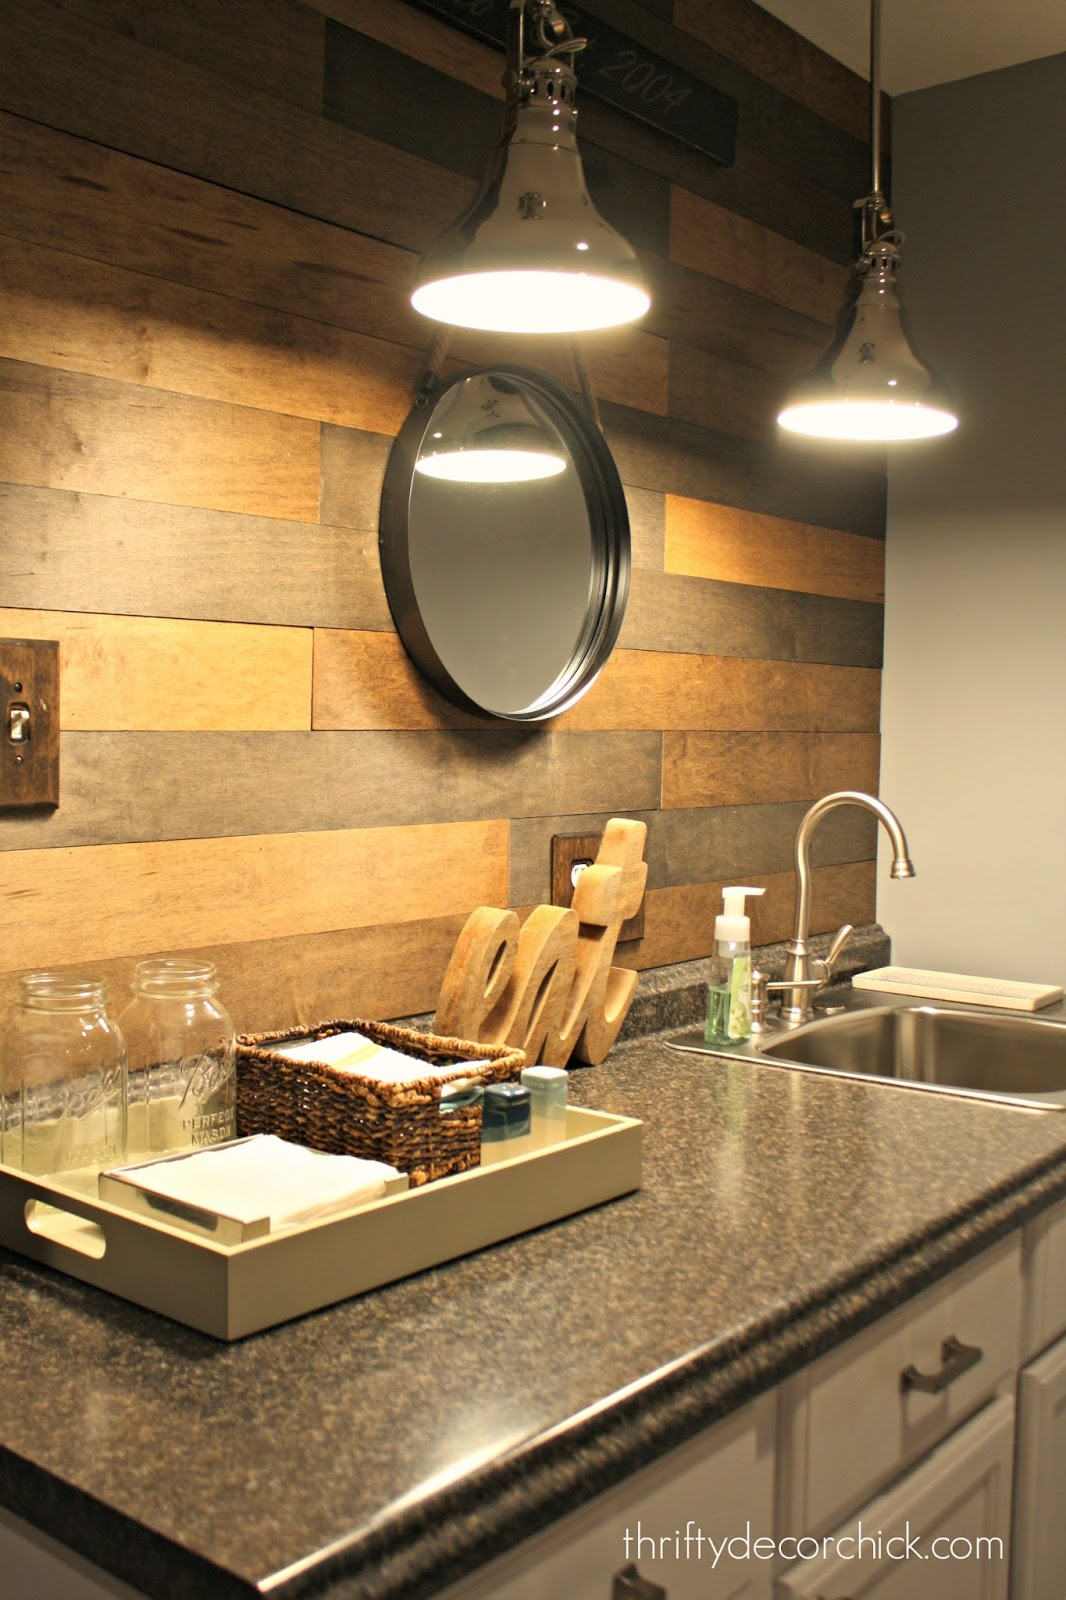 My new favorite wood planked wall from thrifty decor chick